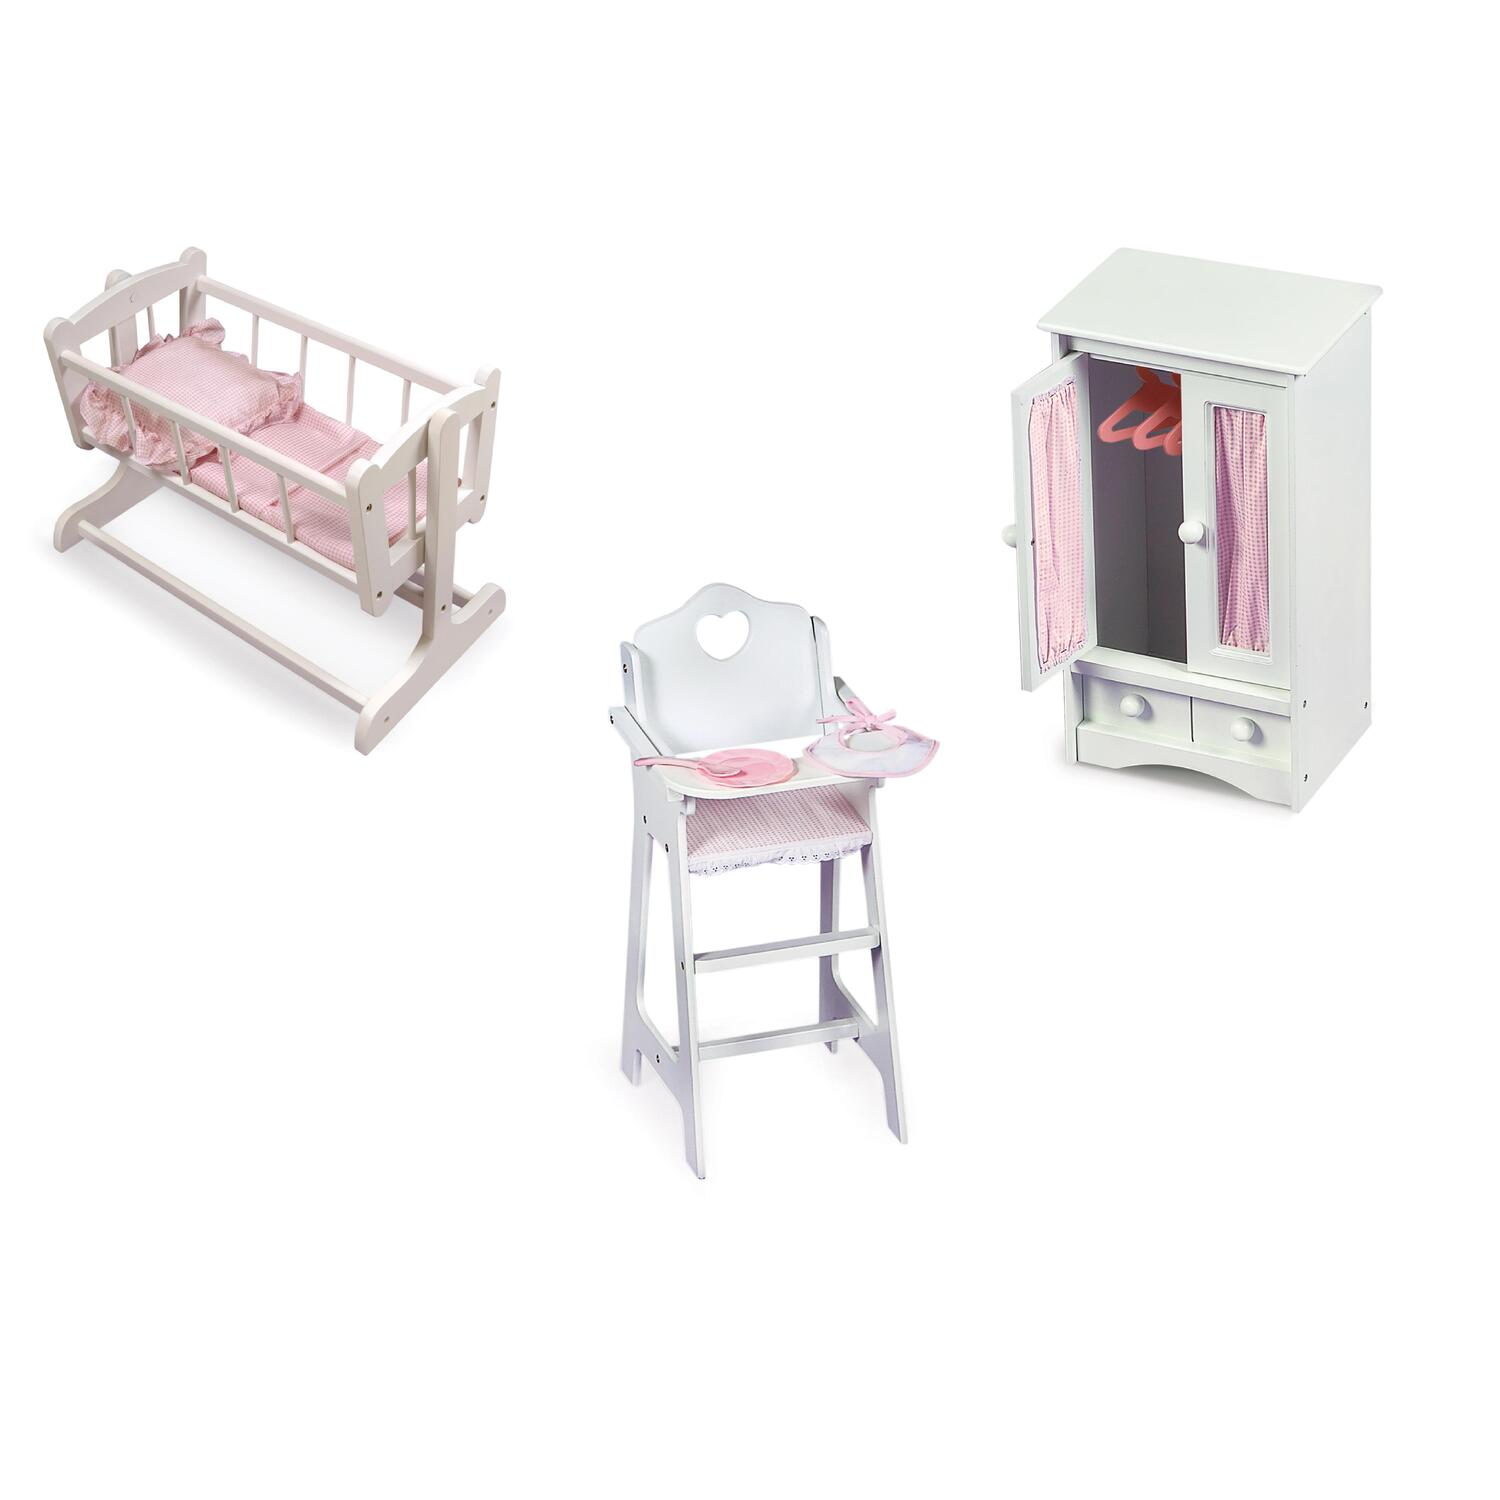 badger basket doll high chair office oh/ia133/n heirloom furniture set from 139 99 to 173